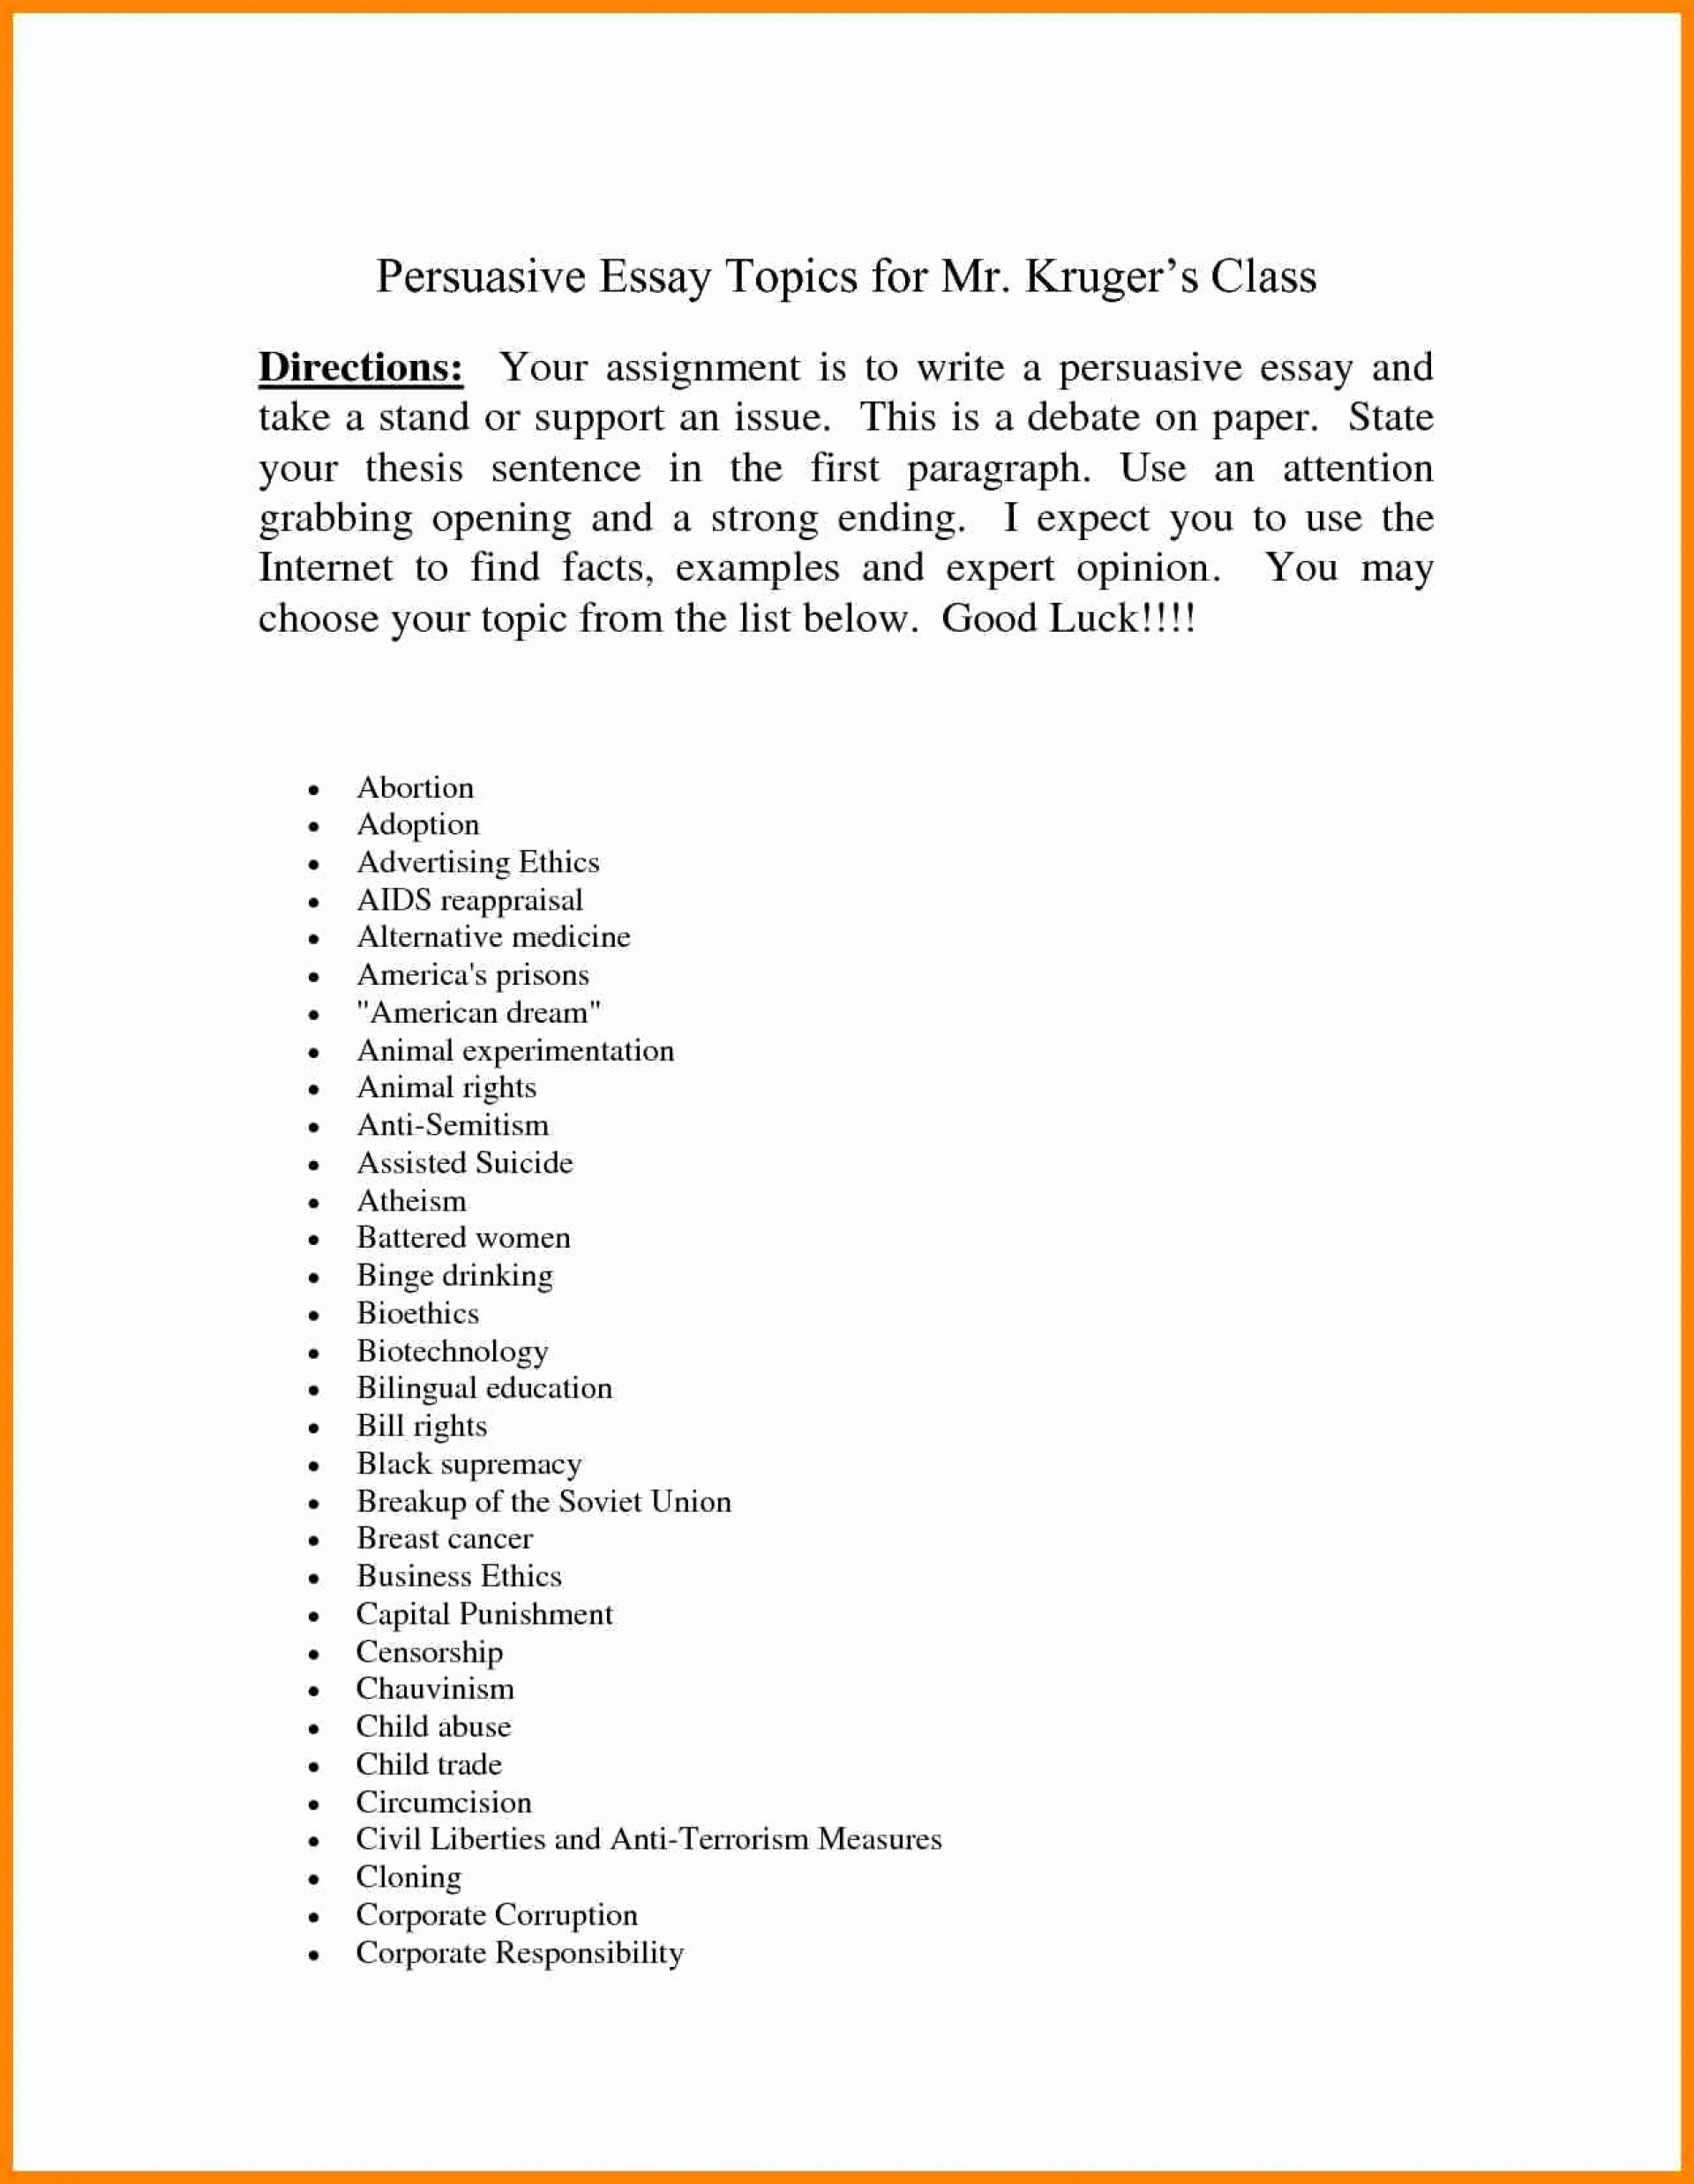 003 Essay Example Topics For Persuasive An Of Censorship Music About Speech Rap Research Paper Argumentative Interesting Breathtaking A Best Top 10 Controversial 1920